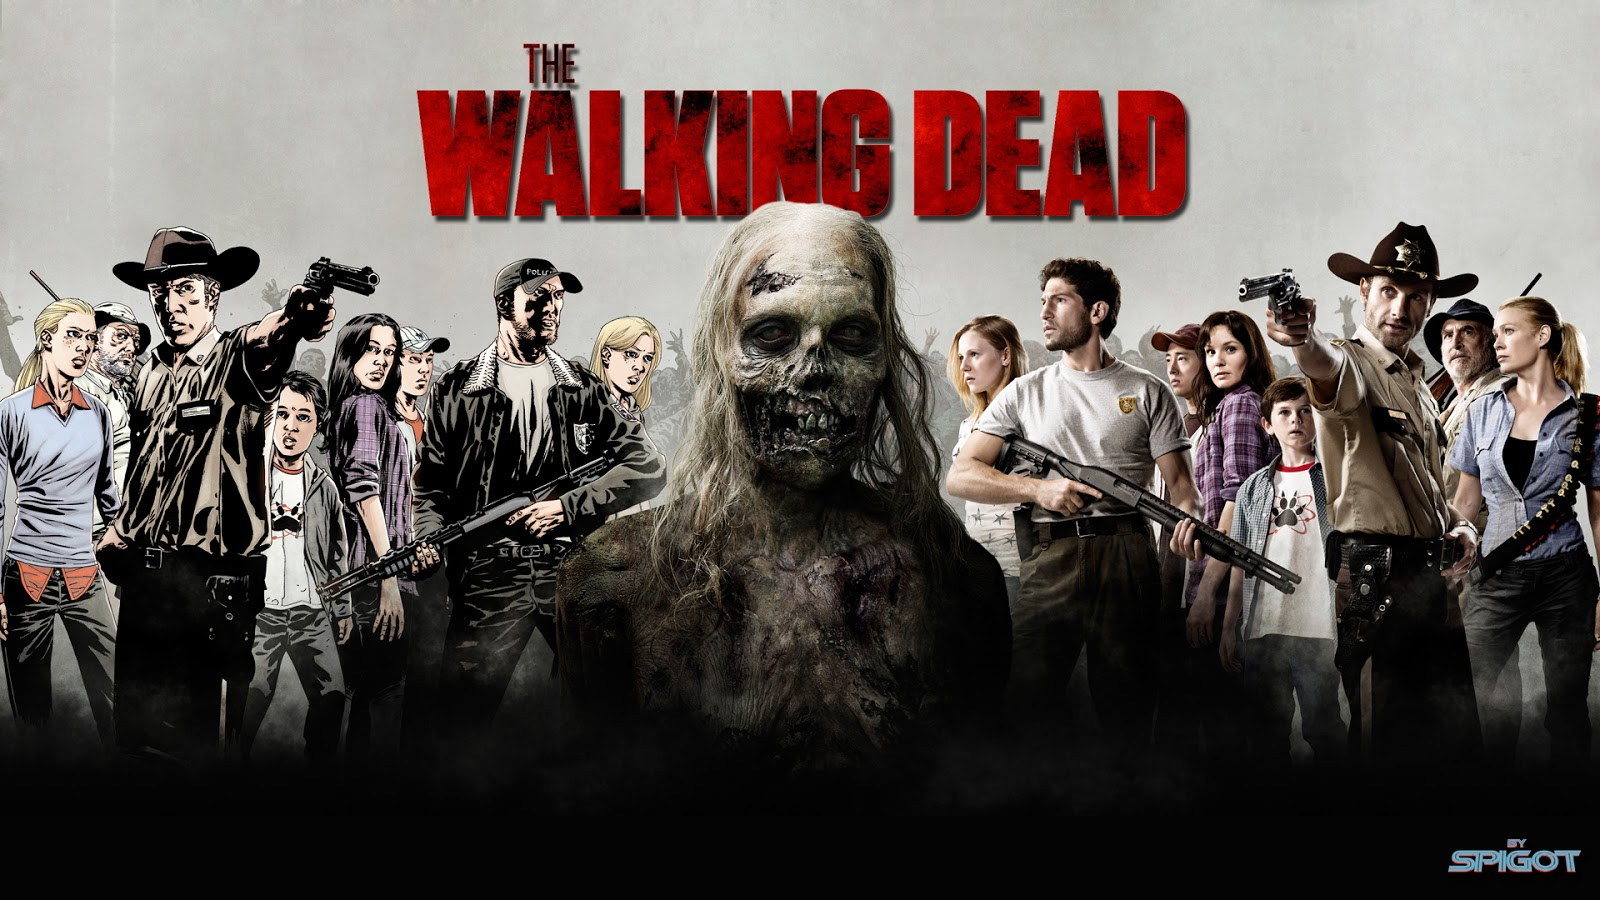 the walking dead season 3 download 720p